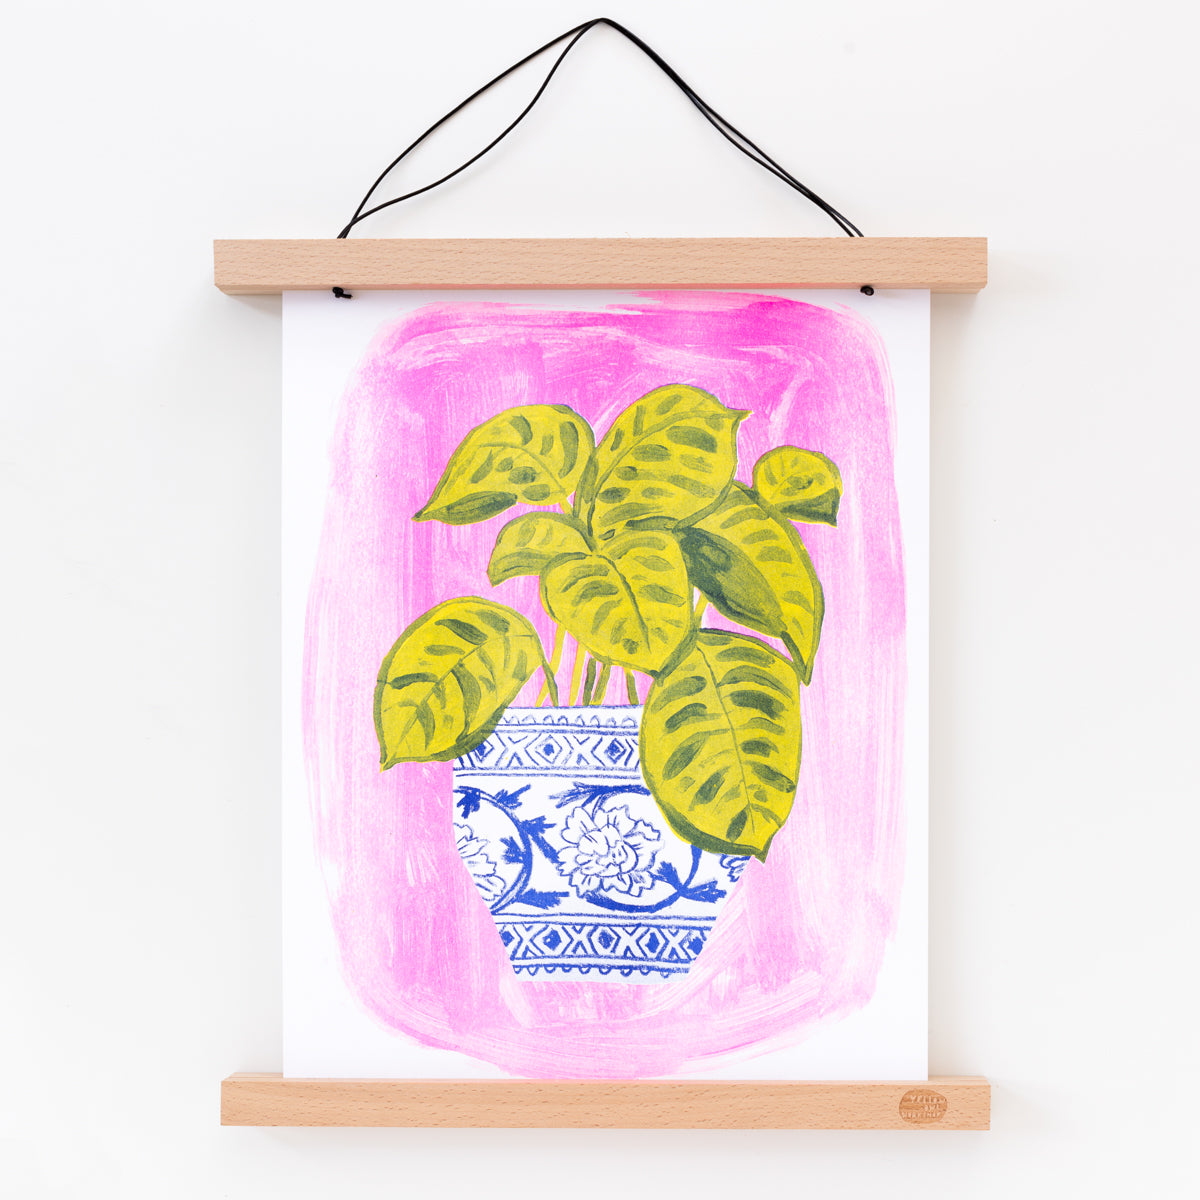 Hand printed Risograph art print of a potted plant